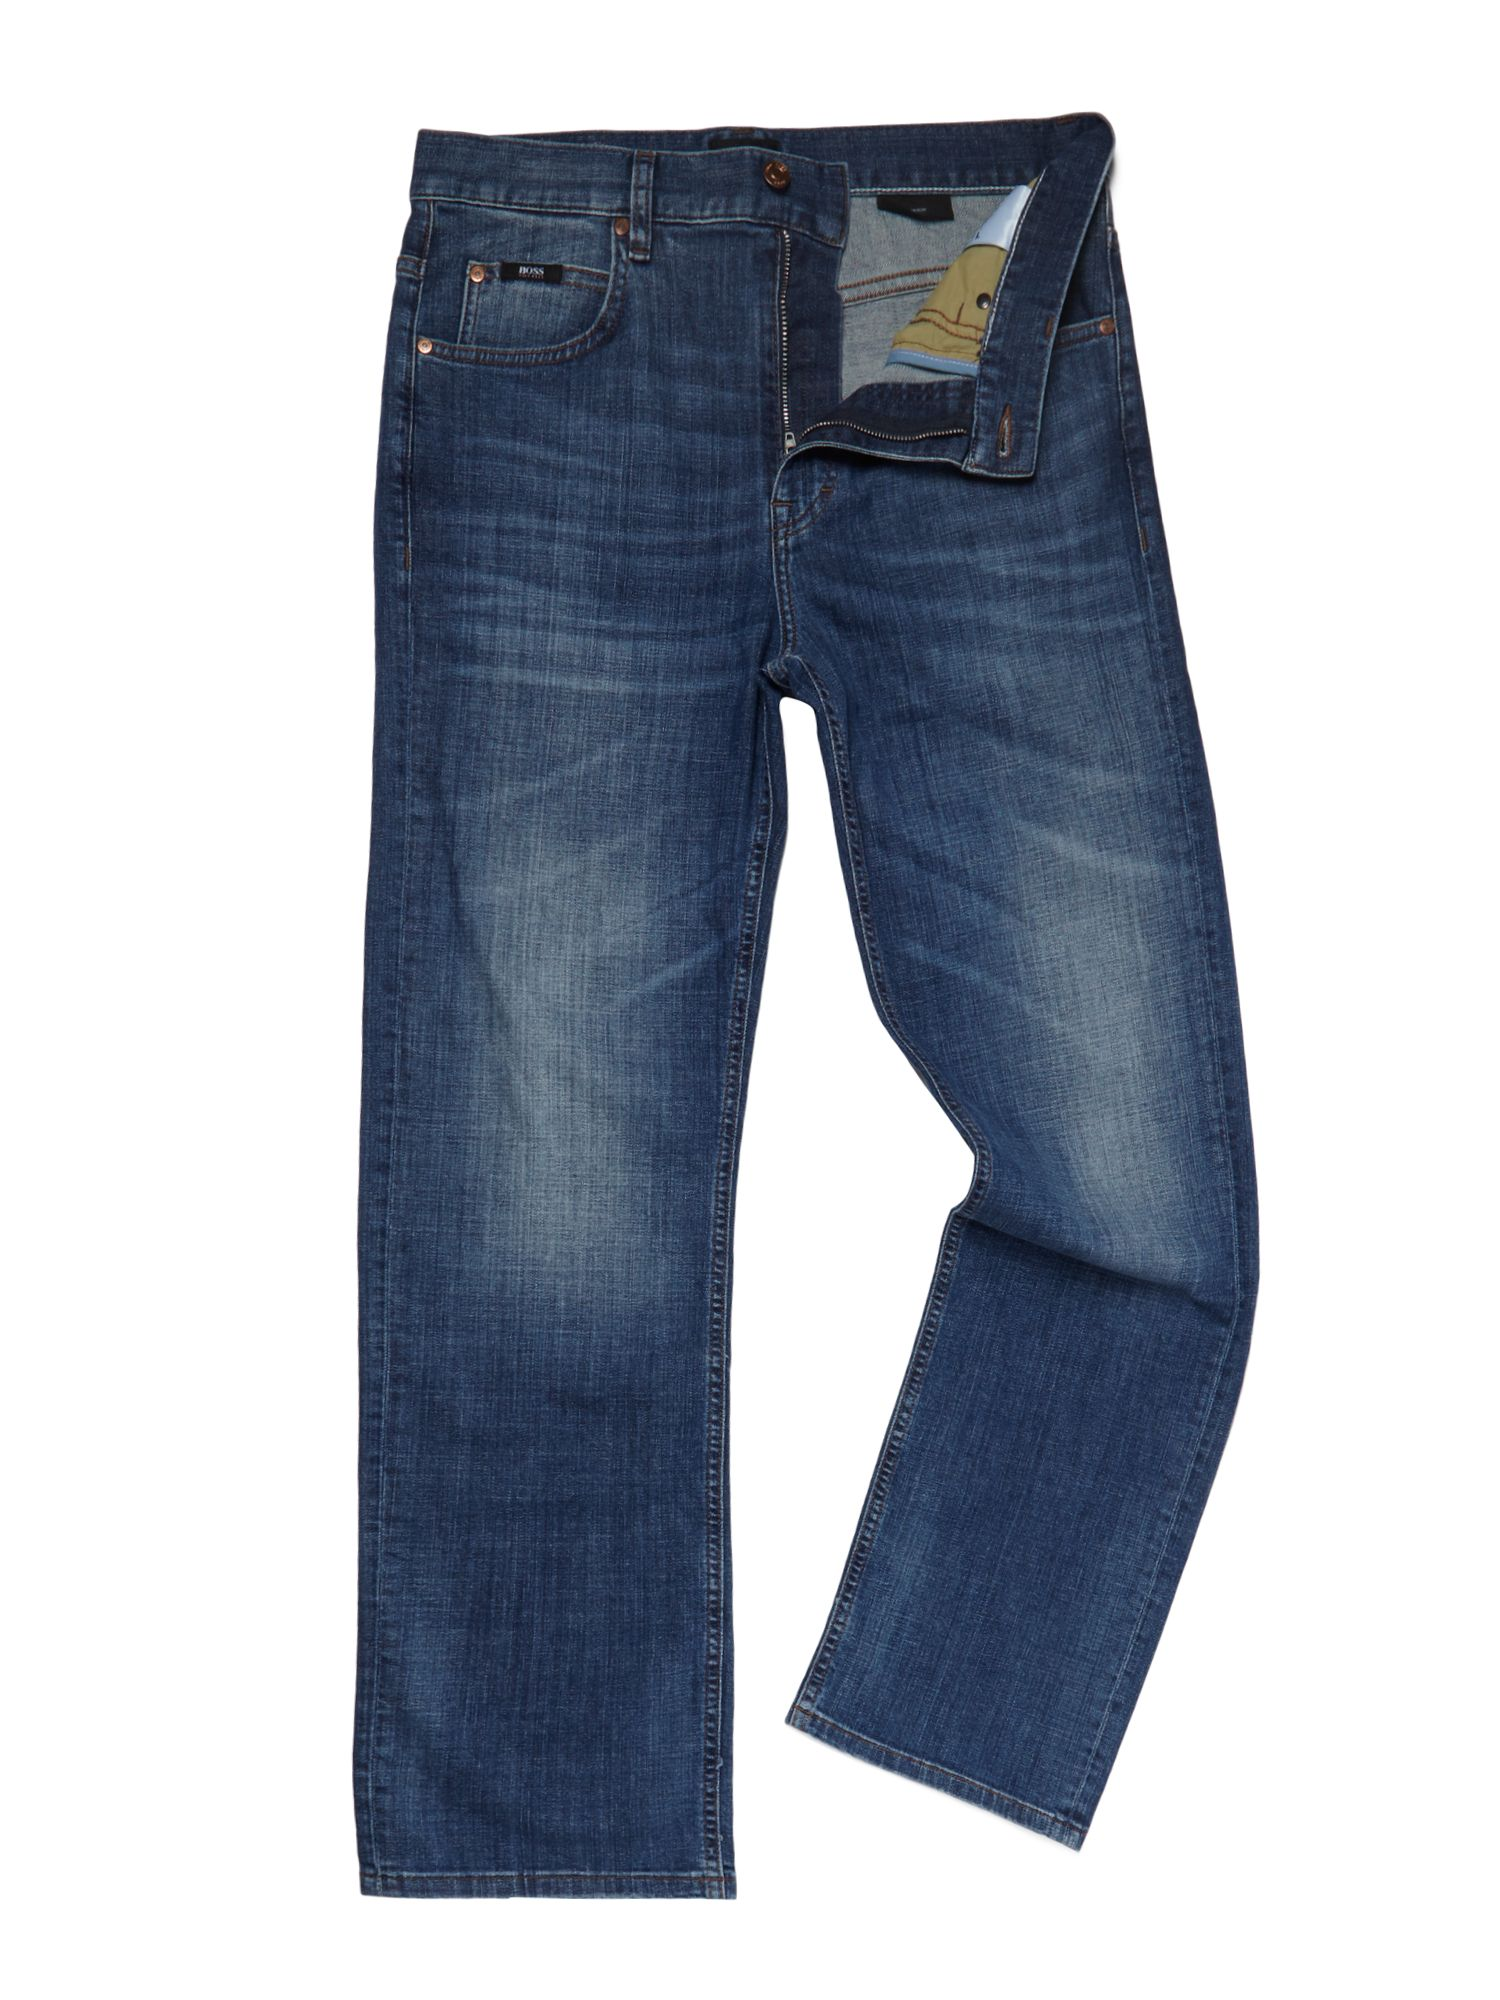 Alabama light wash straight leg jean